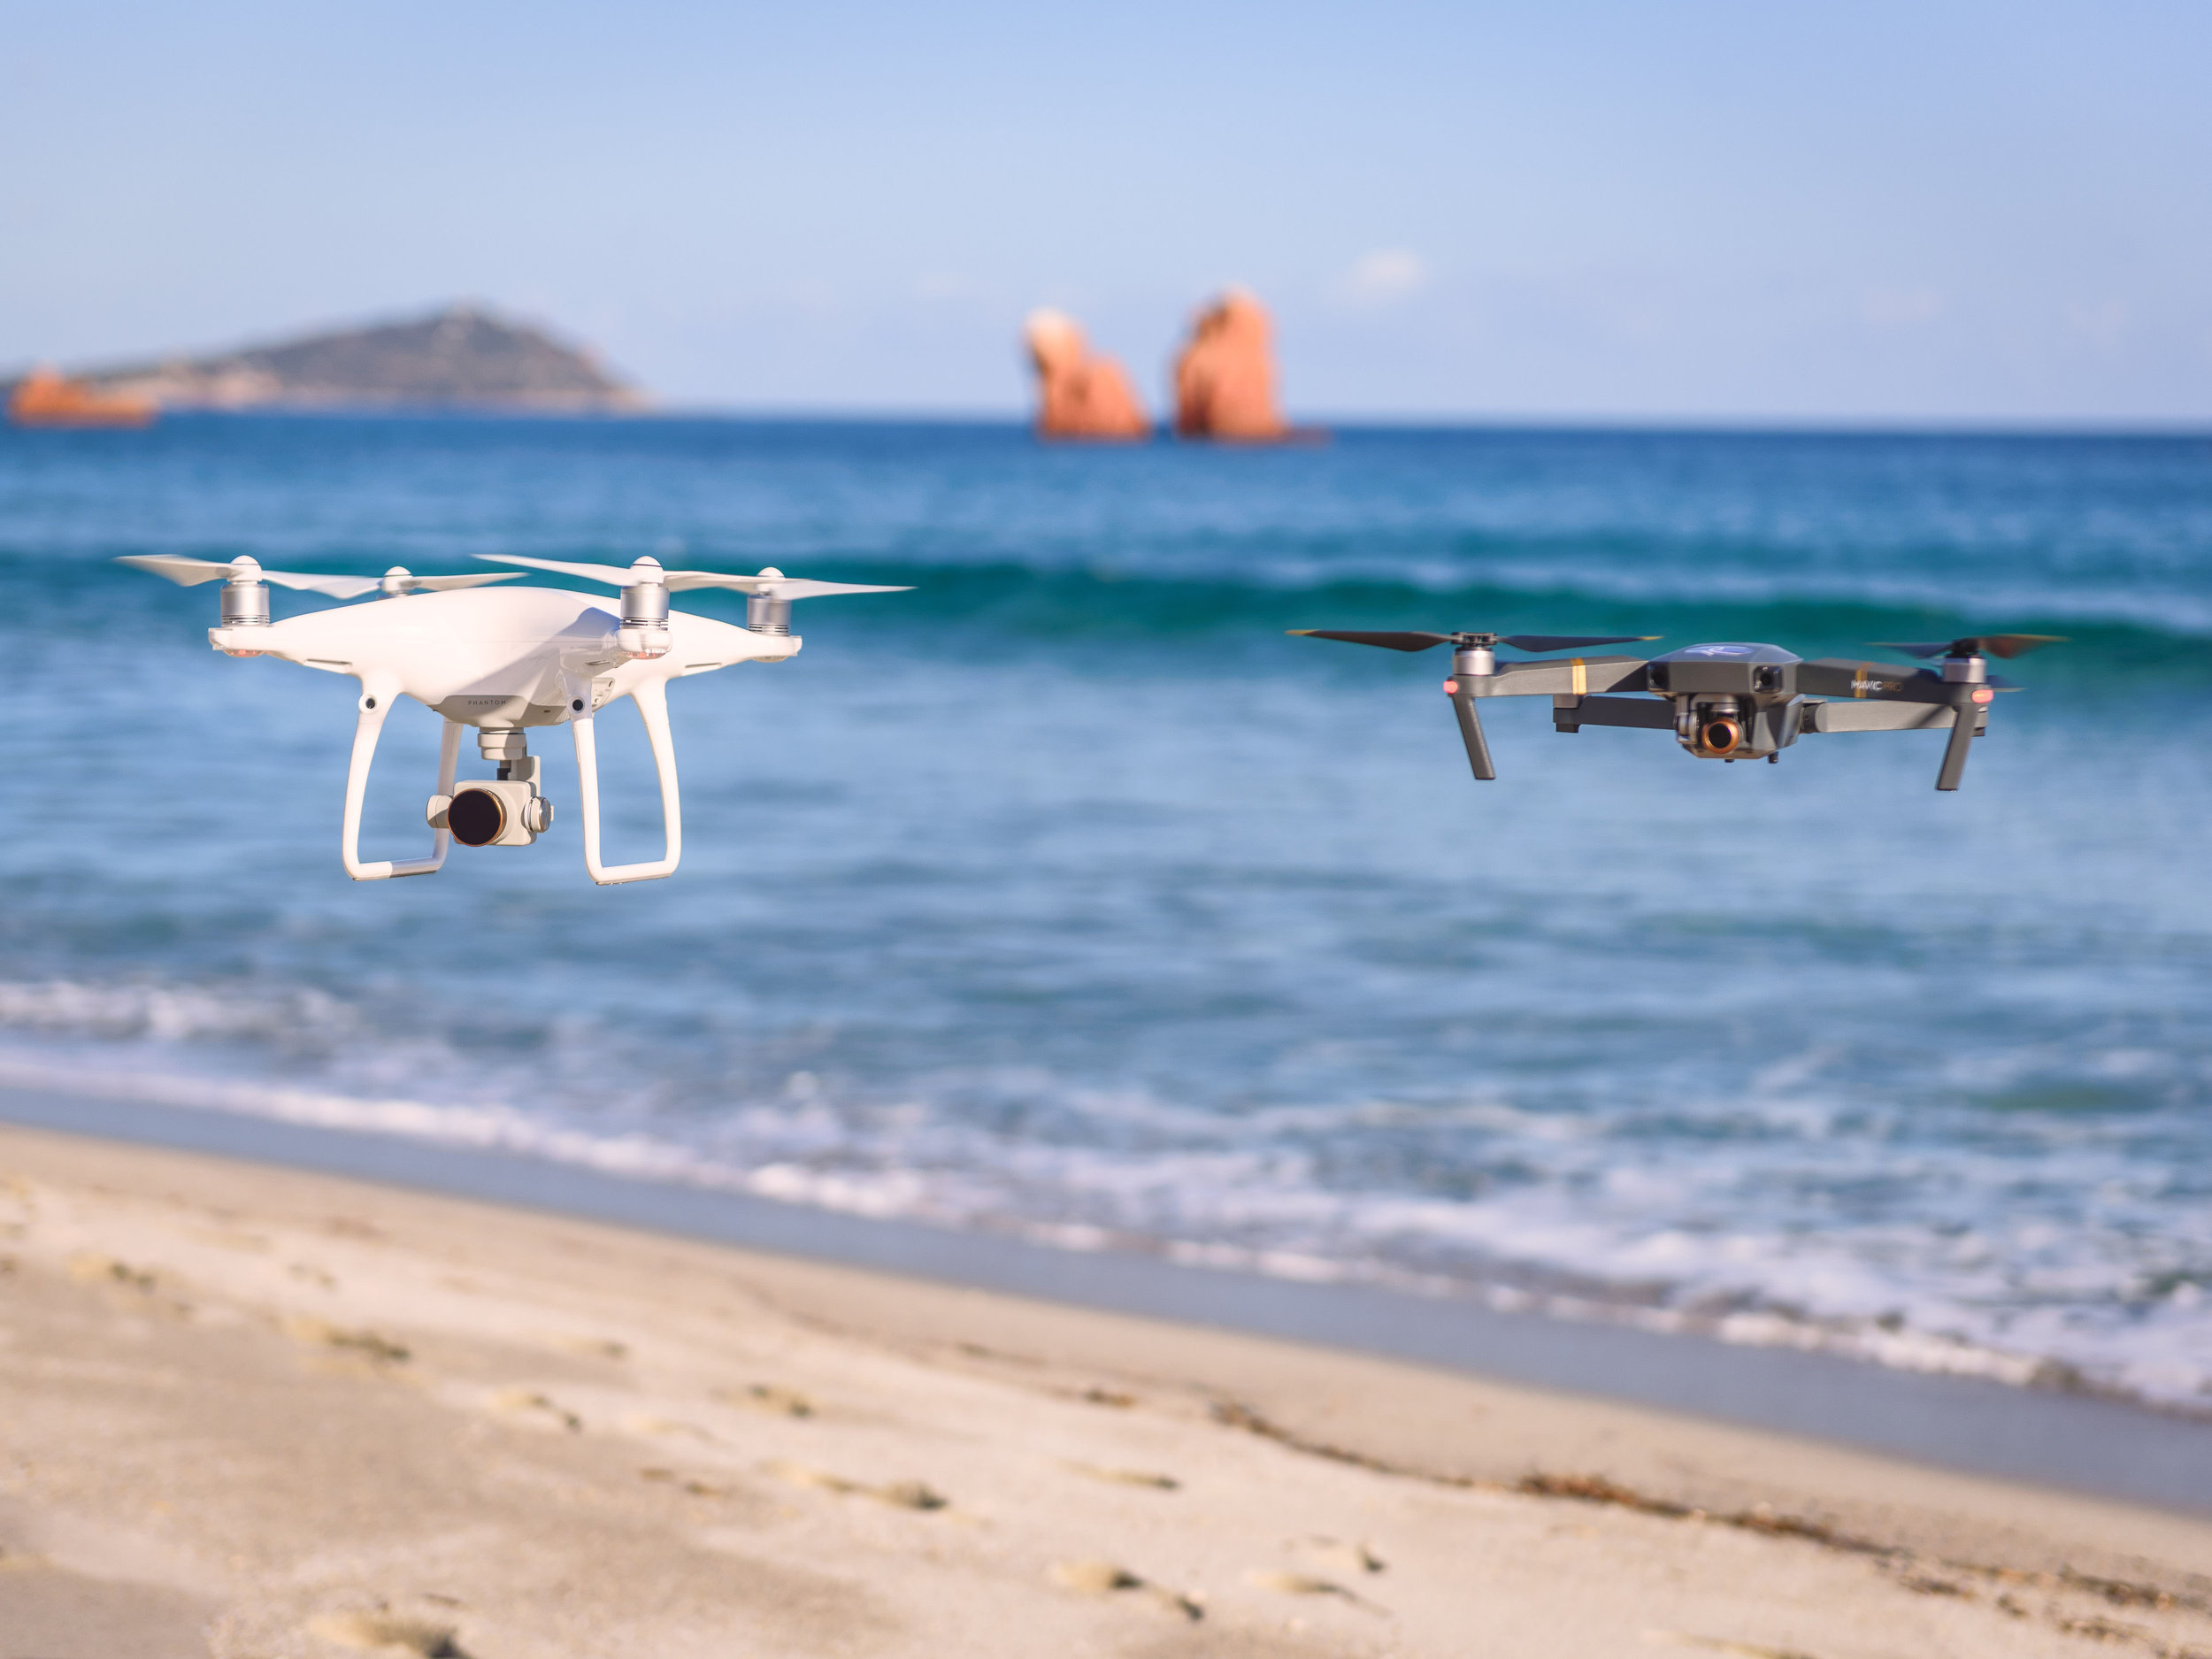 drone-videography-photography-course-zurich.jpg